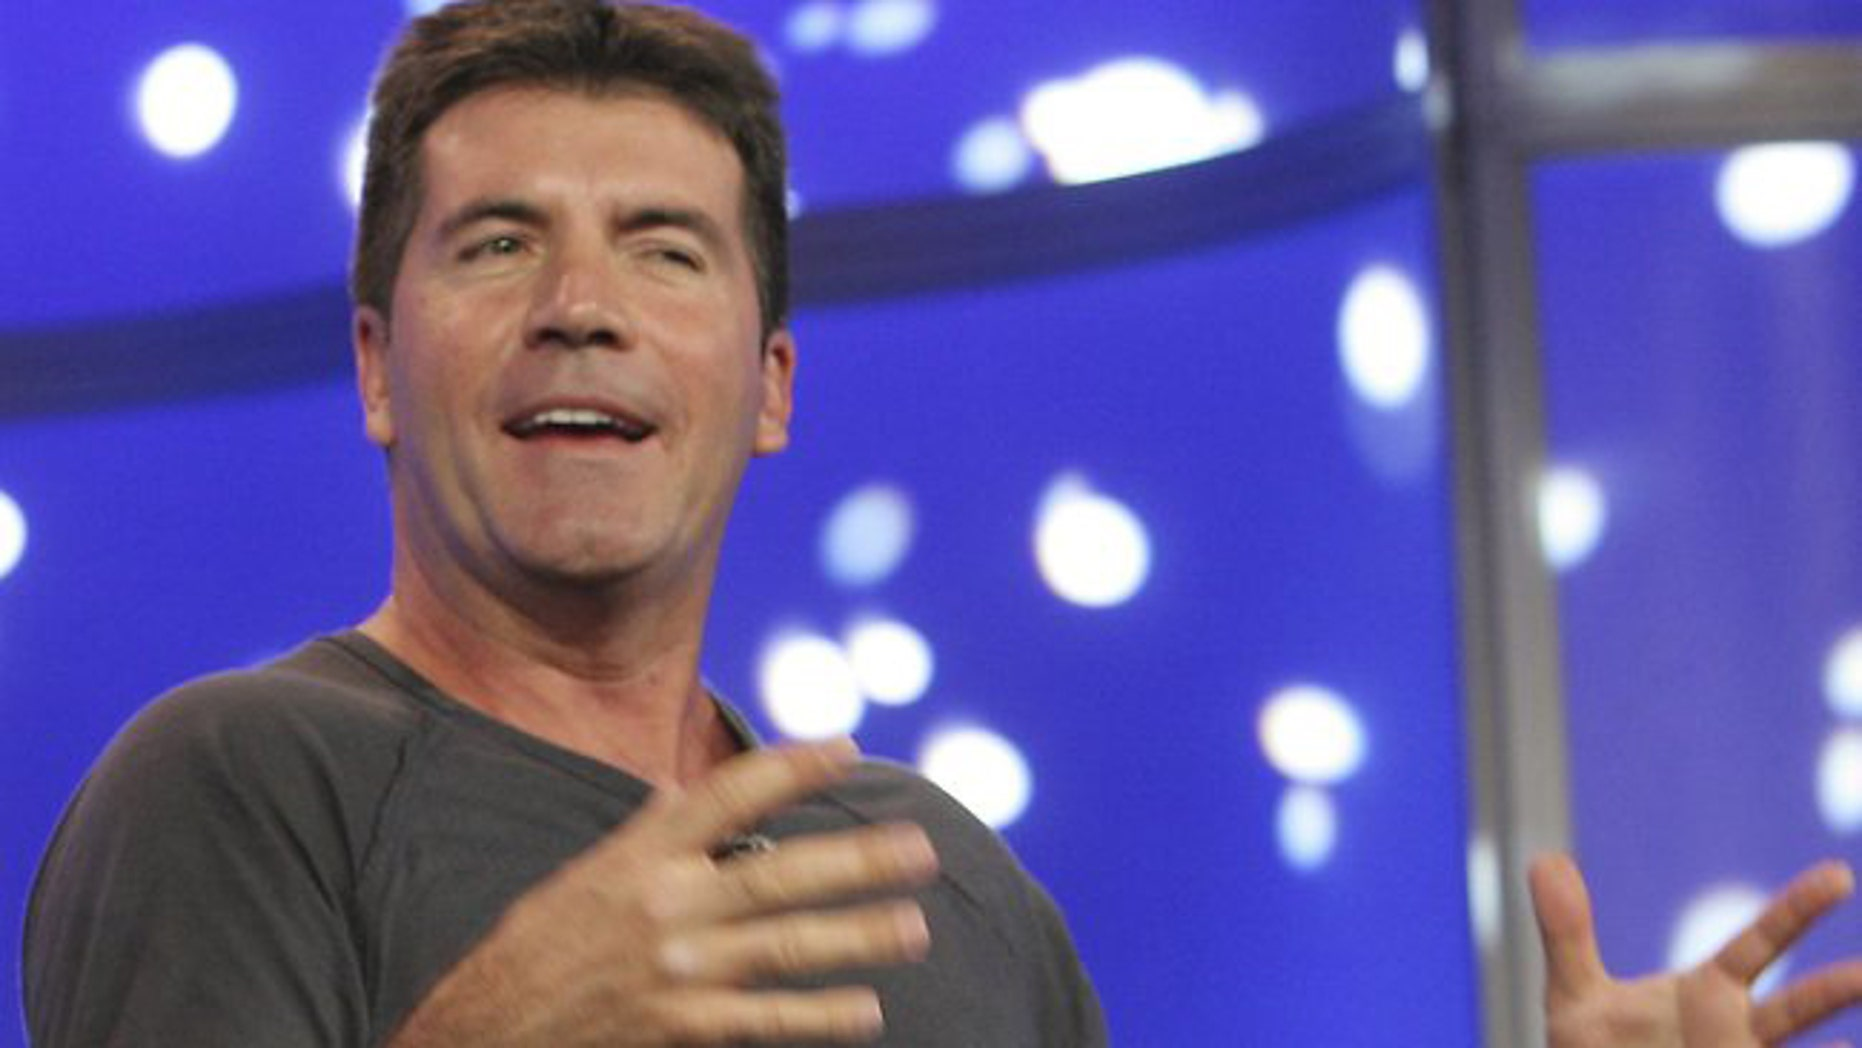 Simon Cowell may be looking to bring his talent show success to the tech industry.